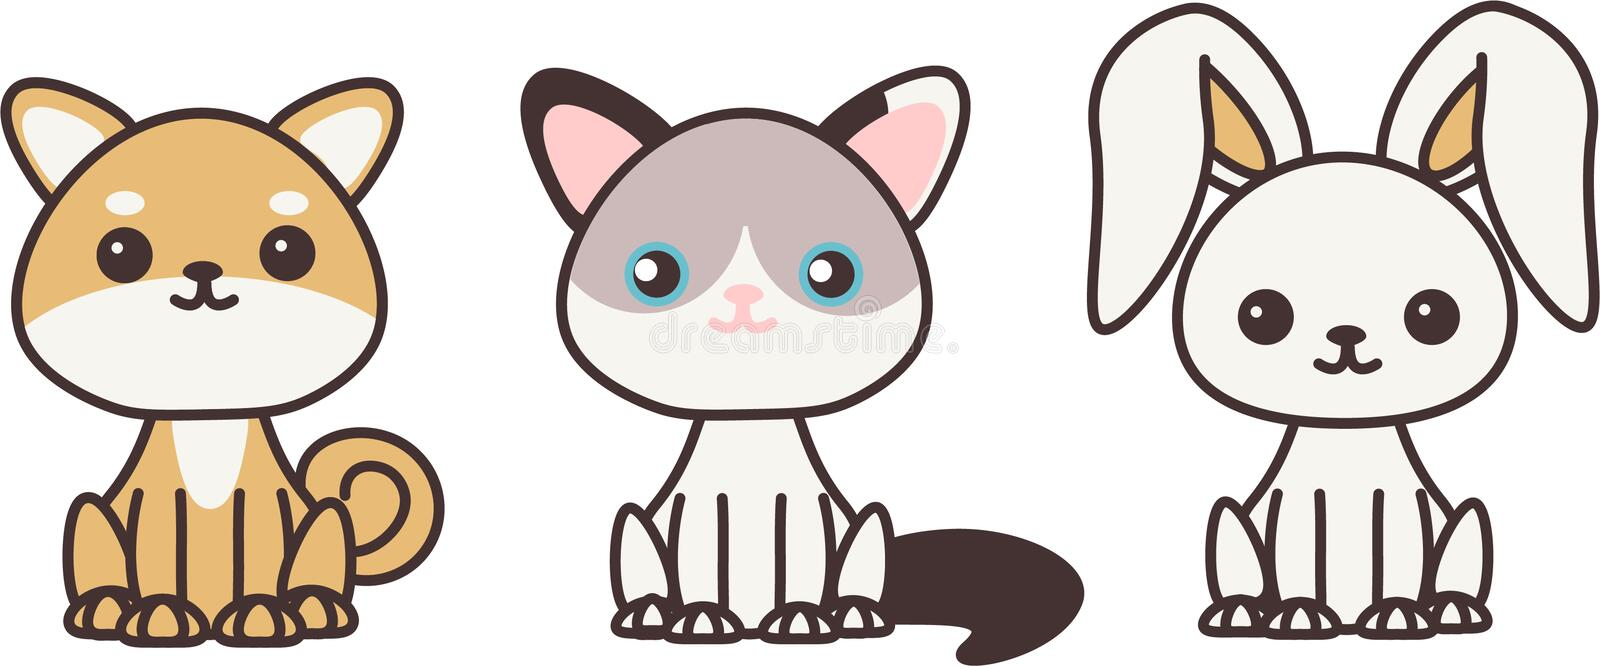 Kawaii pets. Cute little pets. Can be used on postcards, clothing design for children, some stickers etc royalty free illustration